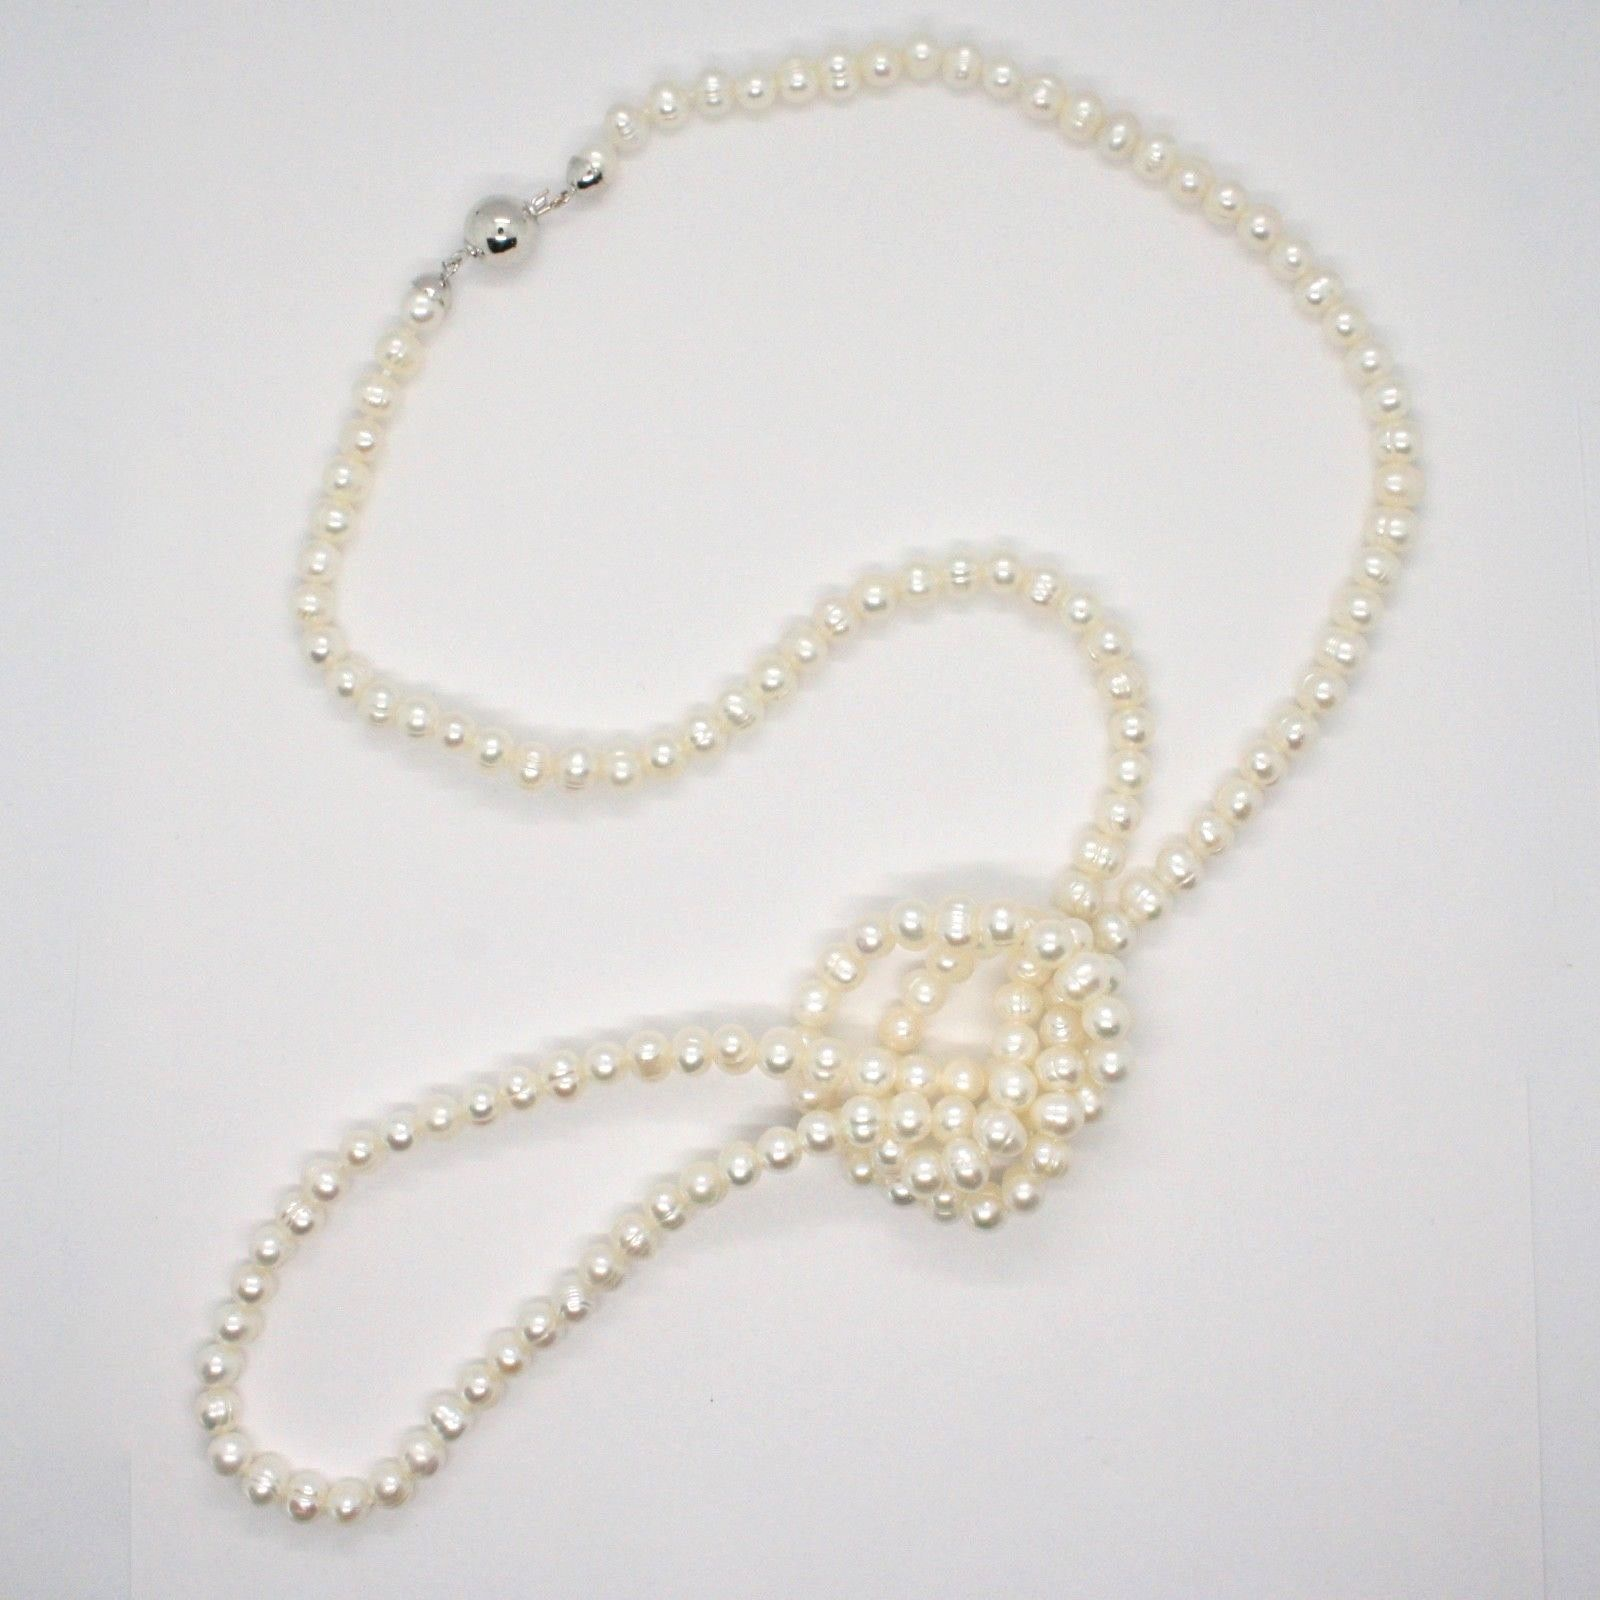 COLLIER LONG 110 CM EN OR BLANC 18K PERLES BLANCHES D'EAU DOUCE MADE IN ITALY